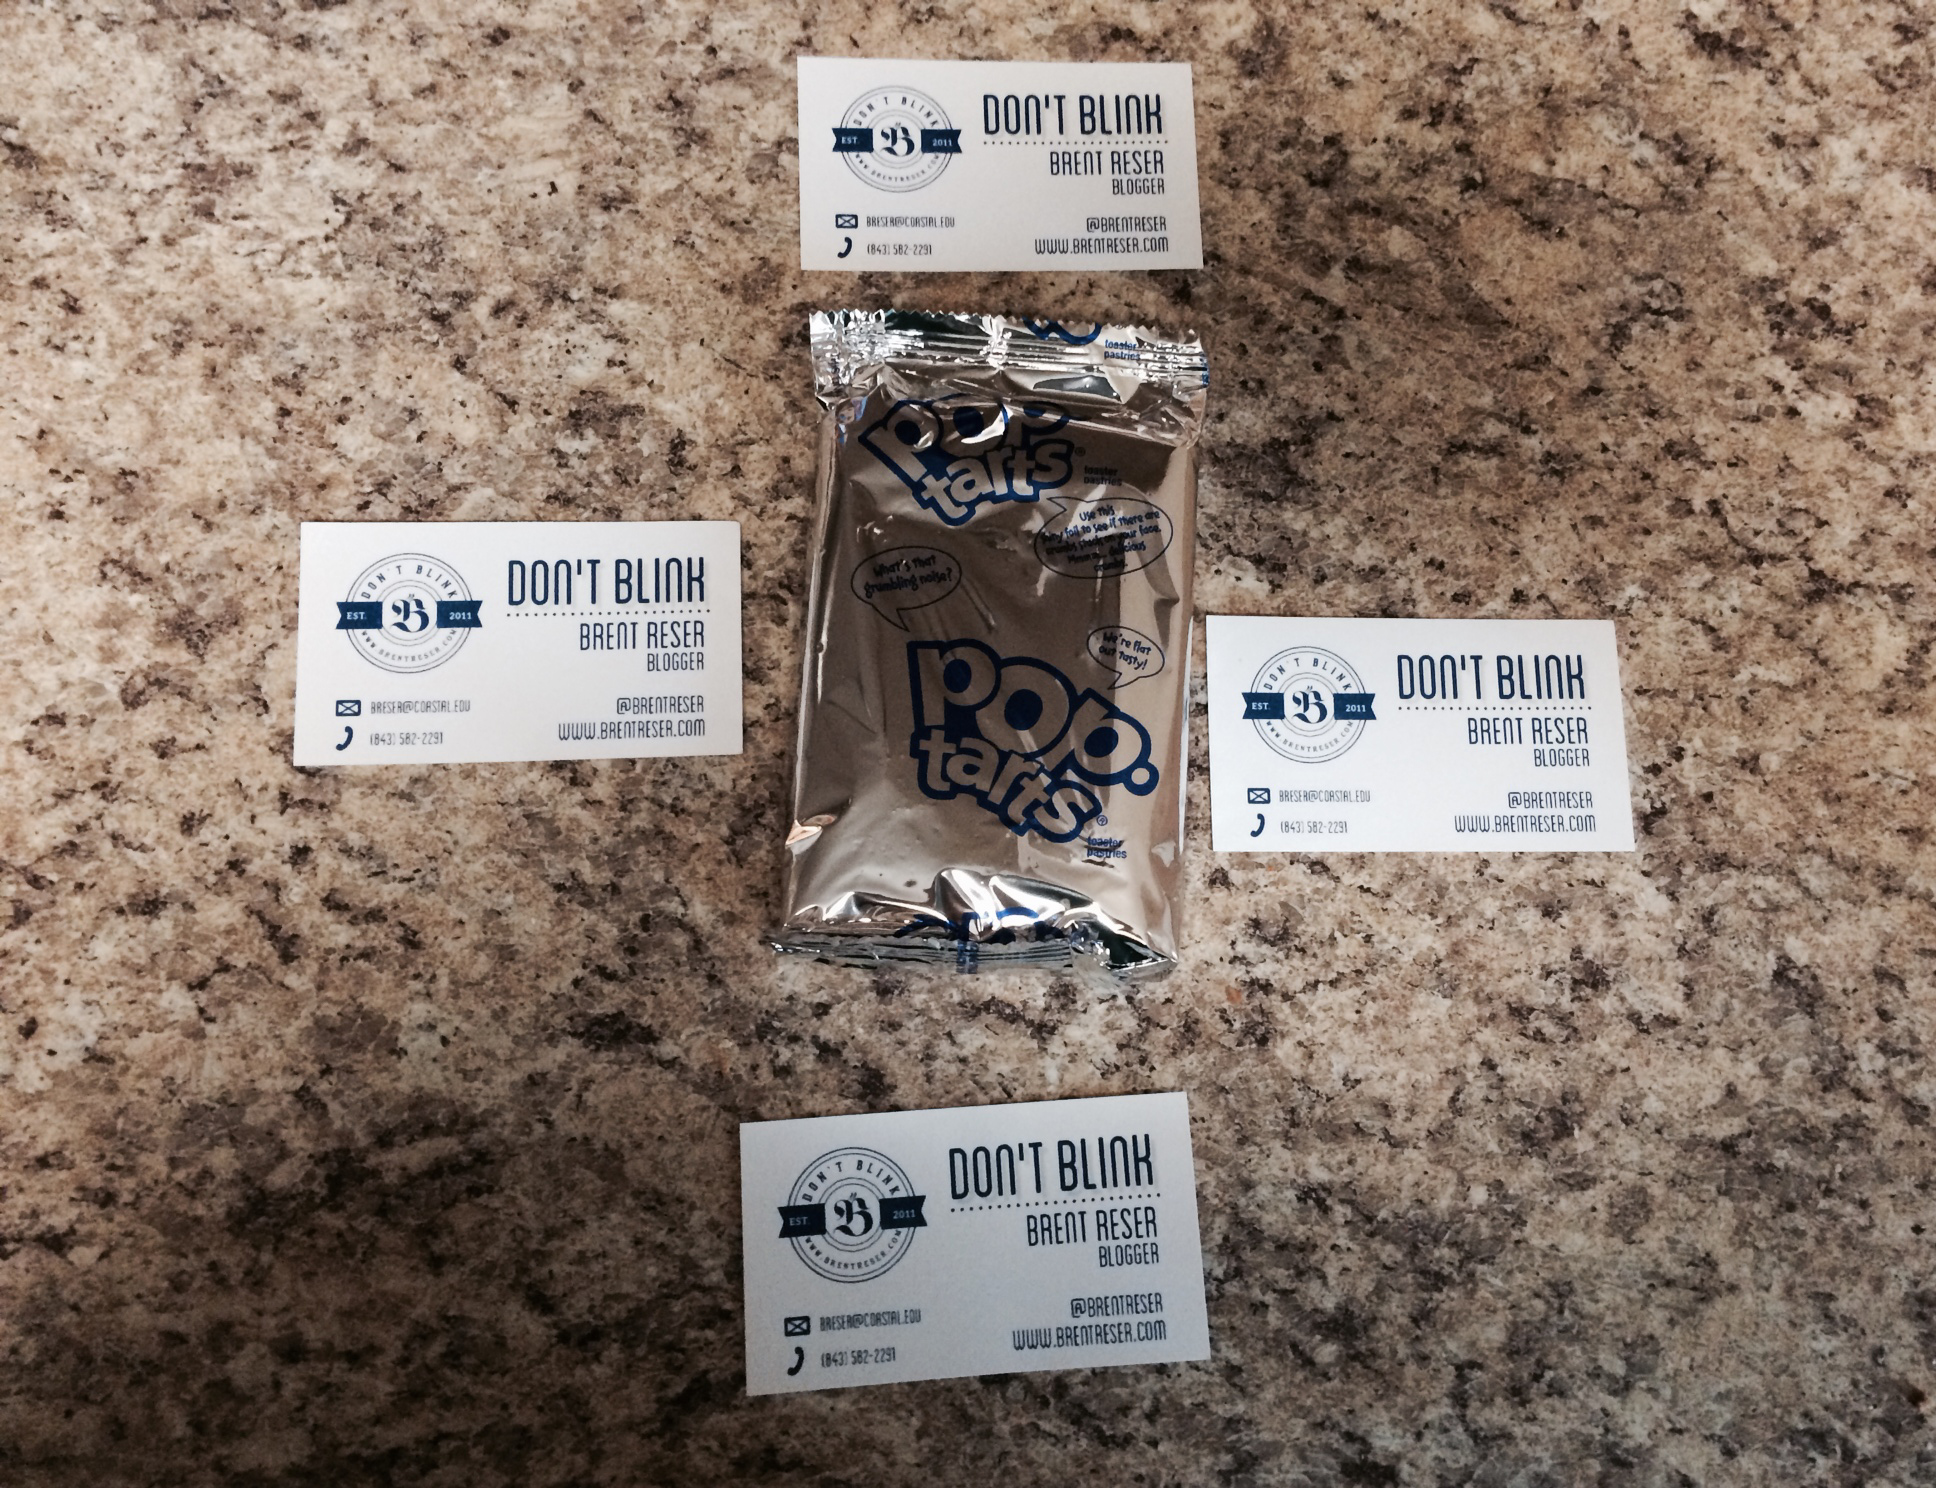 In June, I started bringing Pop-Tart packages just like this to work.